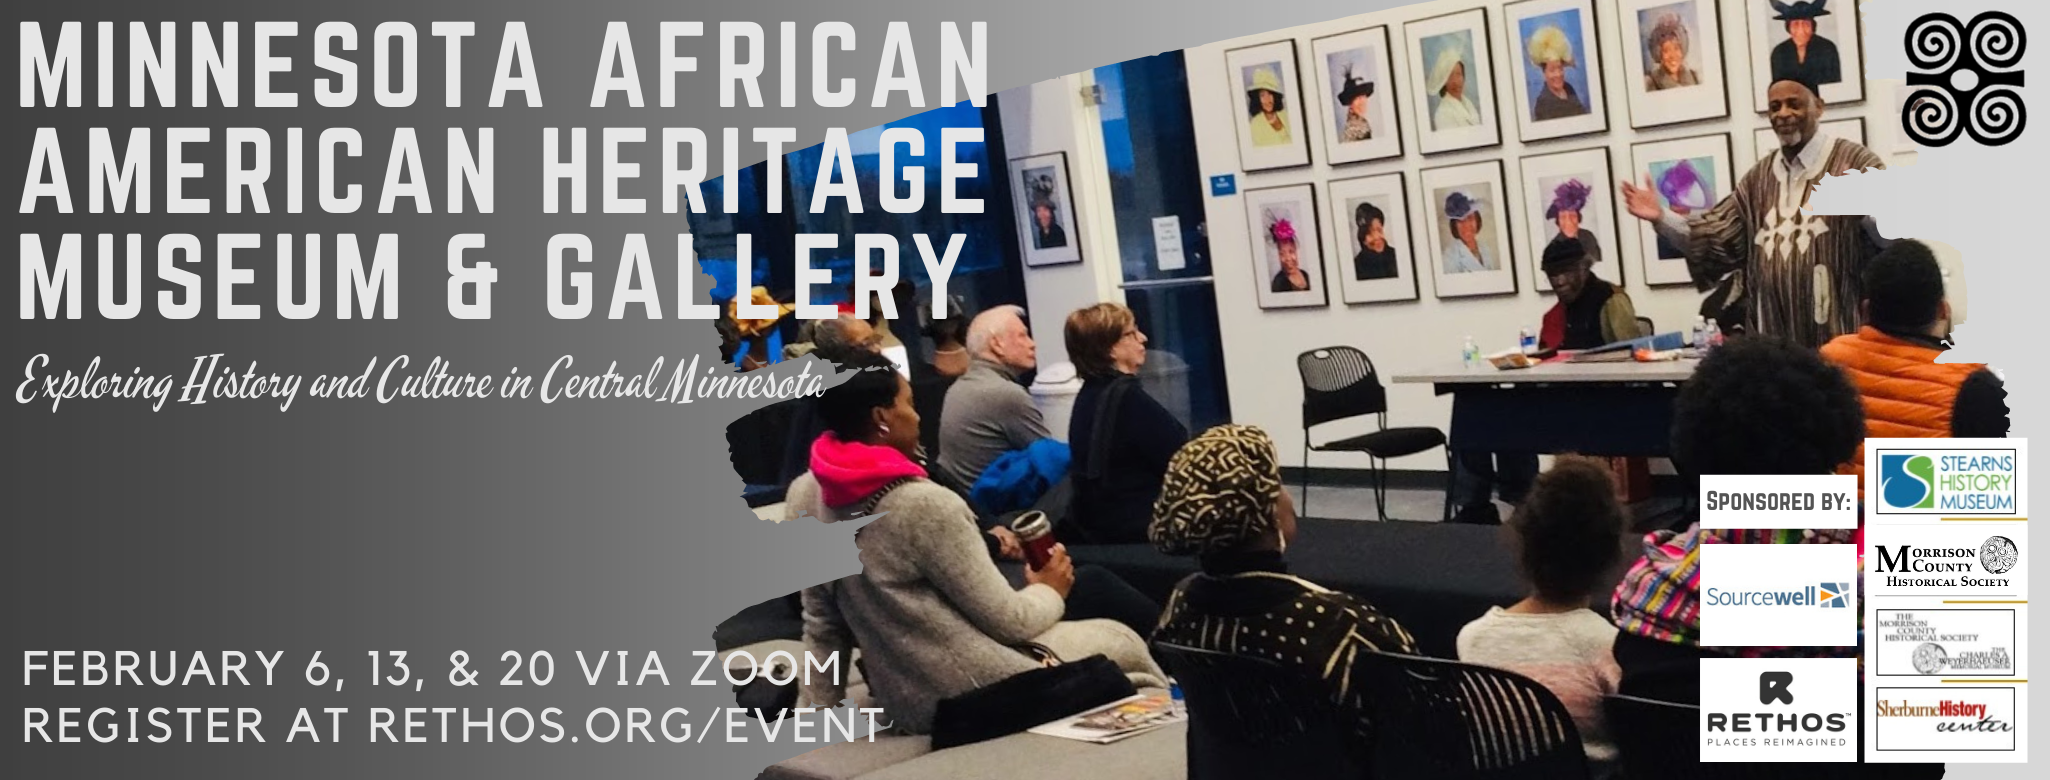 Exploring History & Culture in Central Minnesota: Minnesota African American Heritage Museum and Gallery, February 2021.